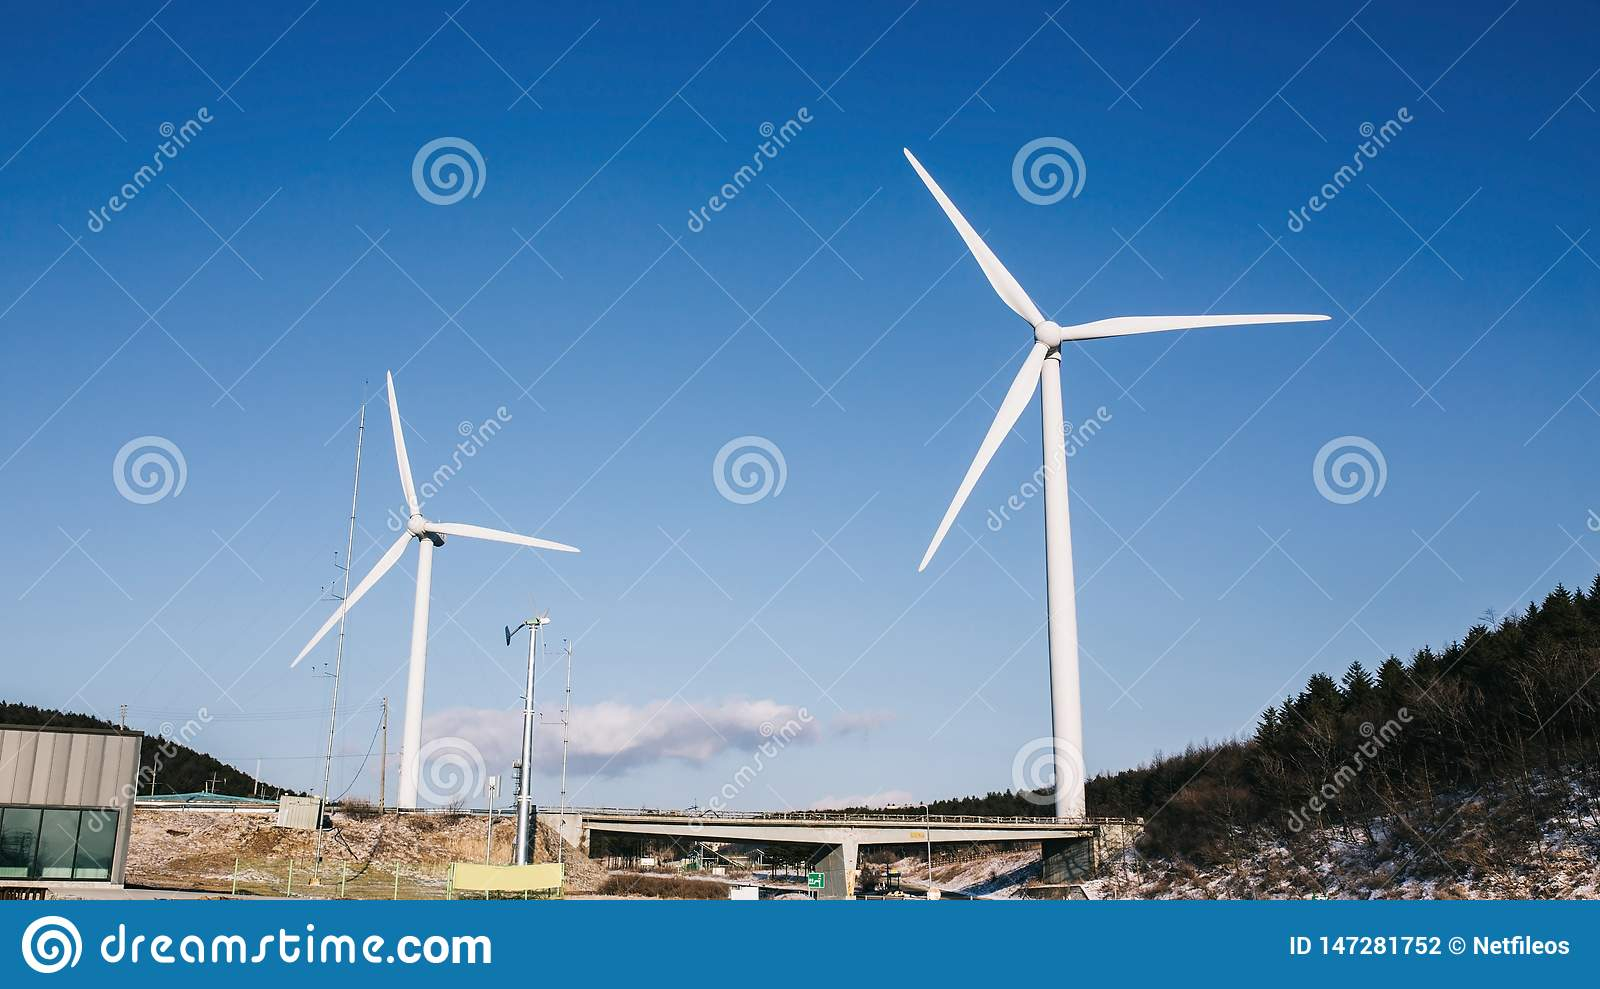 Wind turbine in field and meadow on mountain with beauty blue sky and cloudy background.